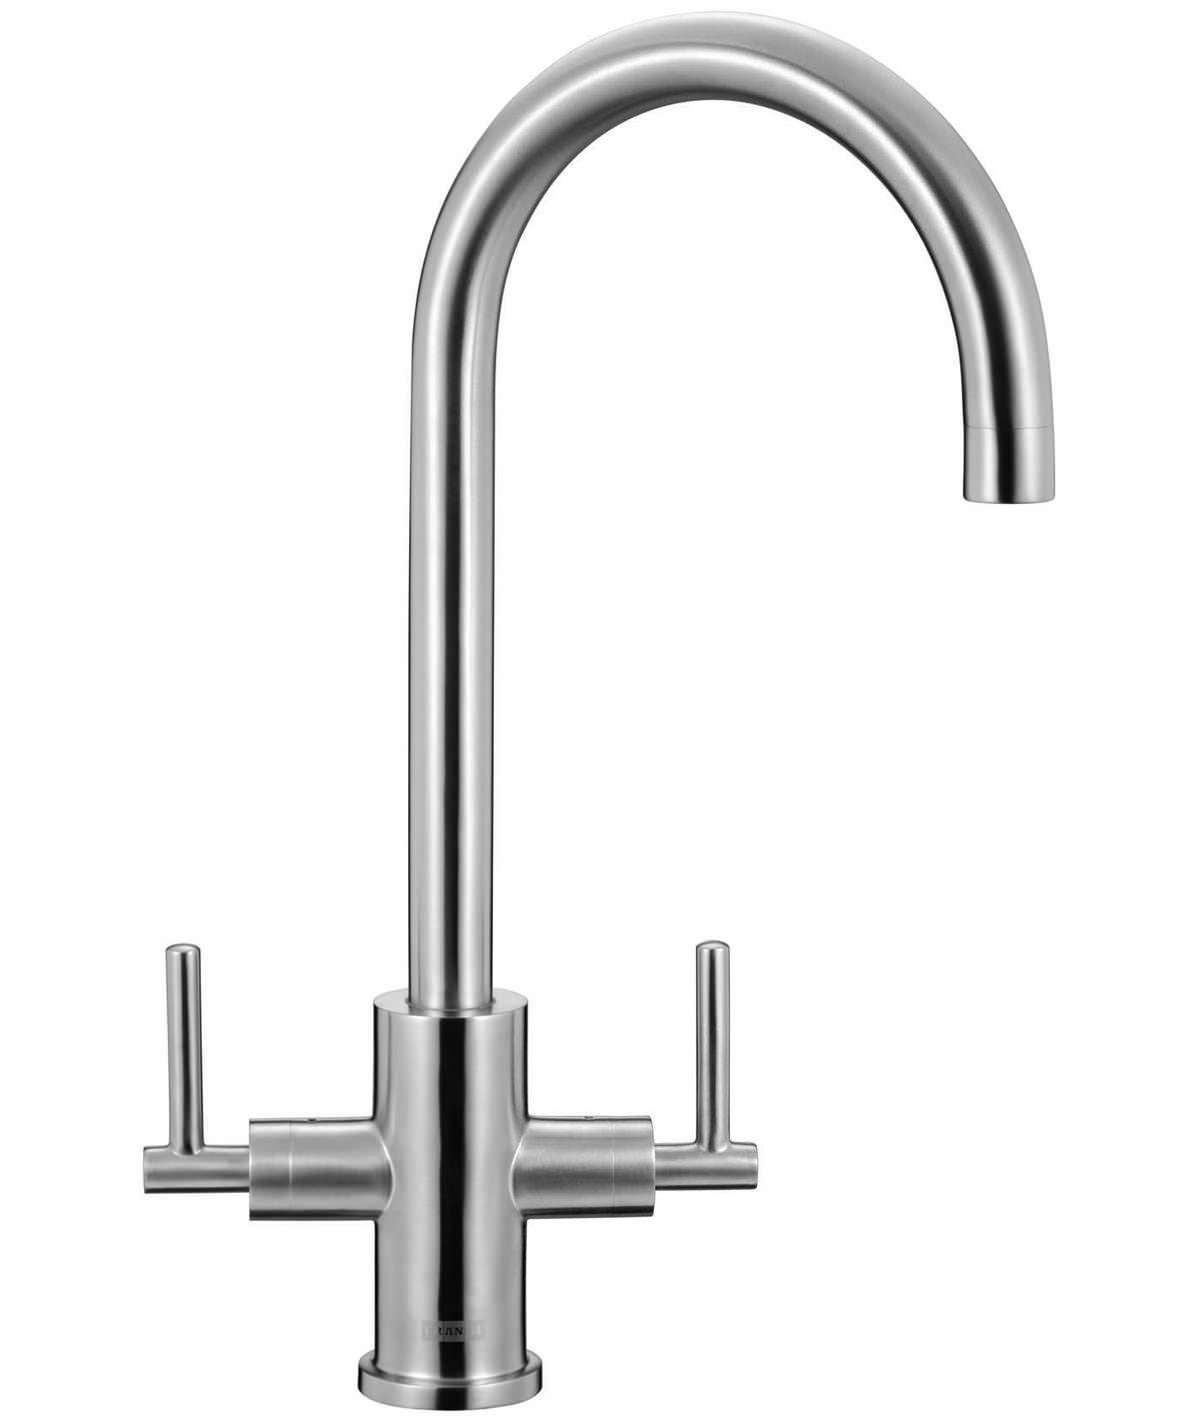 qs supplies taps kitchen mixers franke panto kitchen sink mixer tap ...